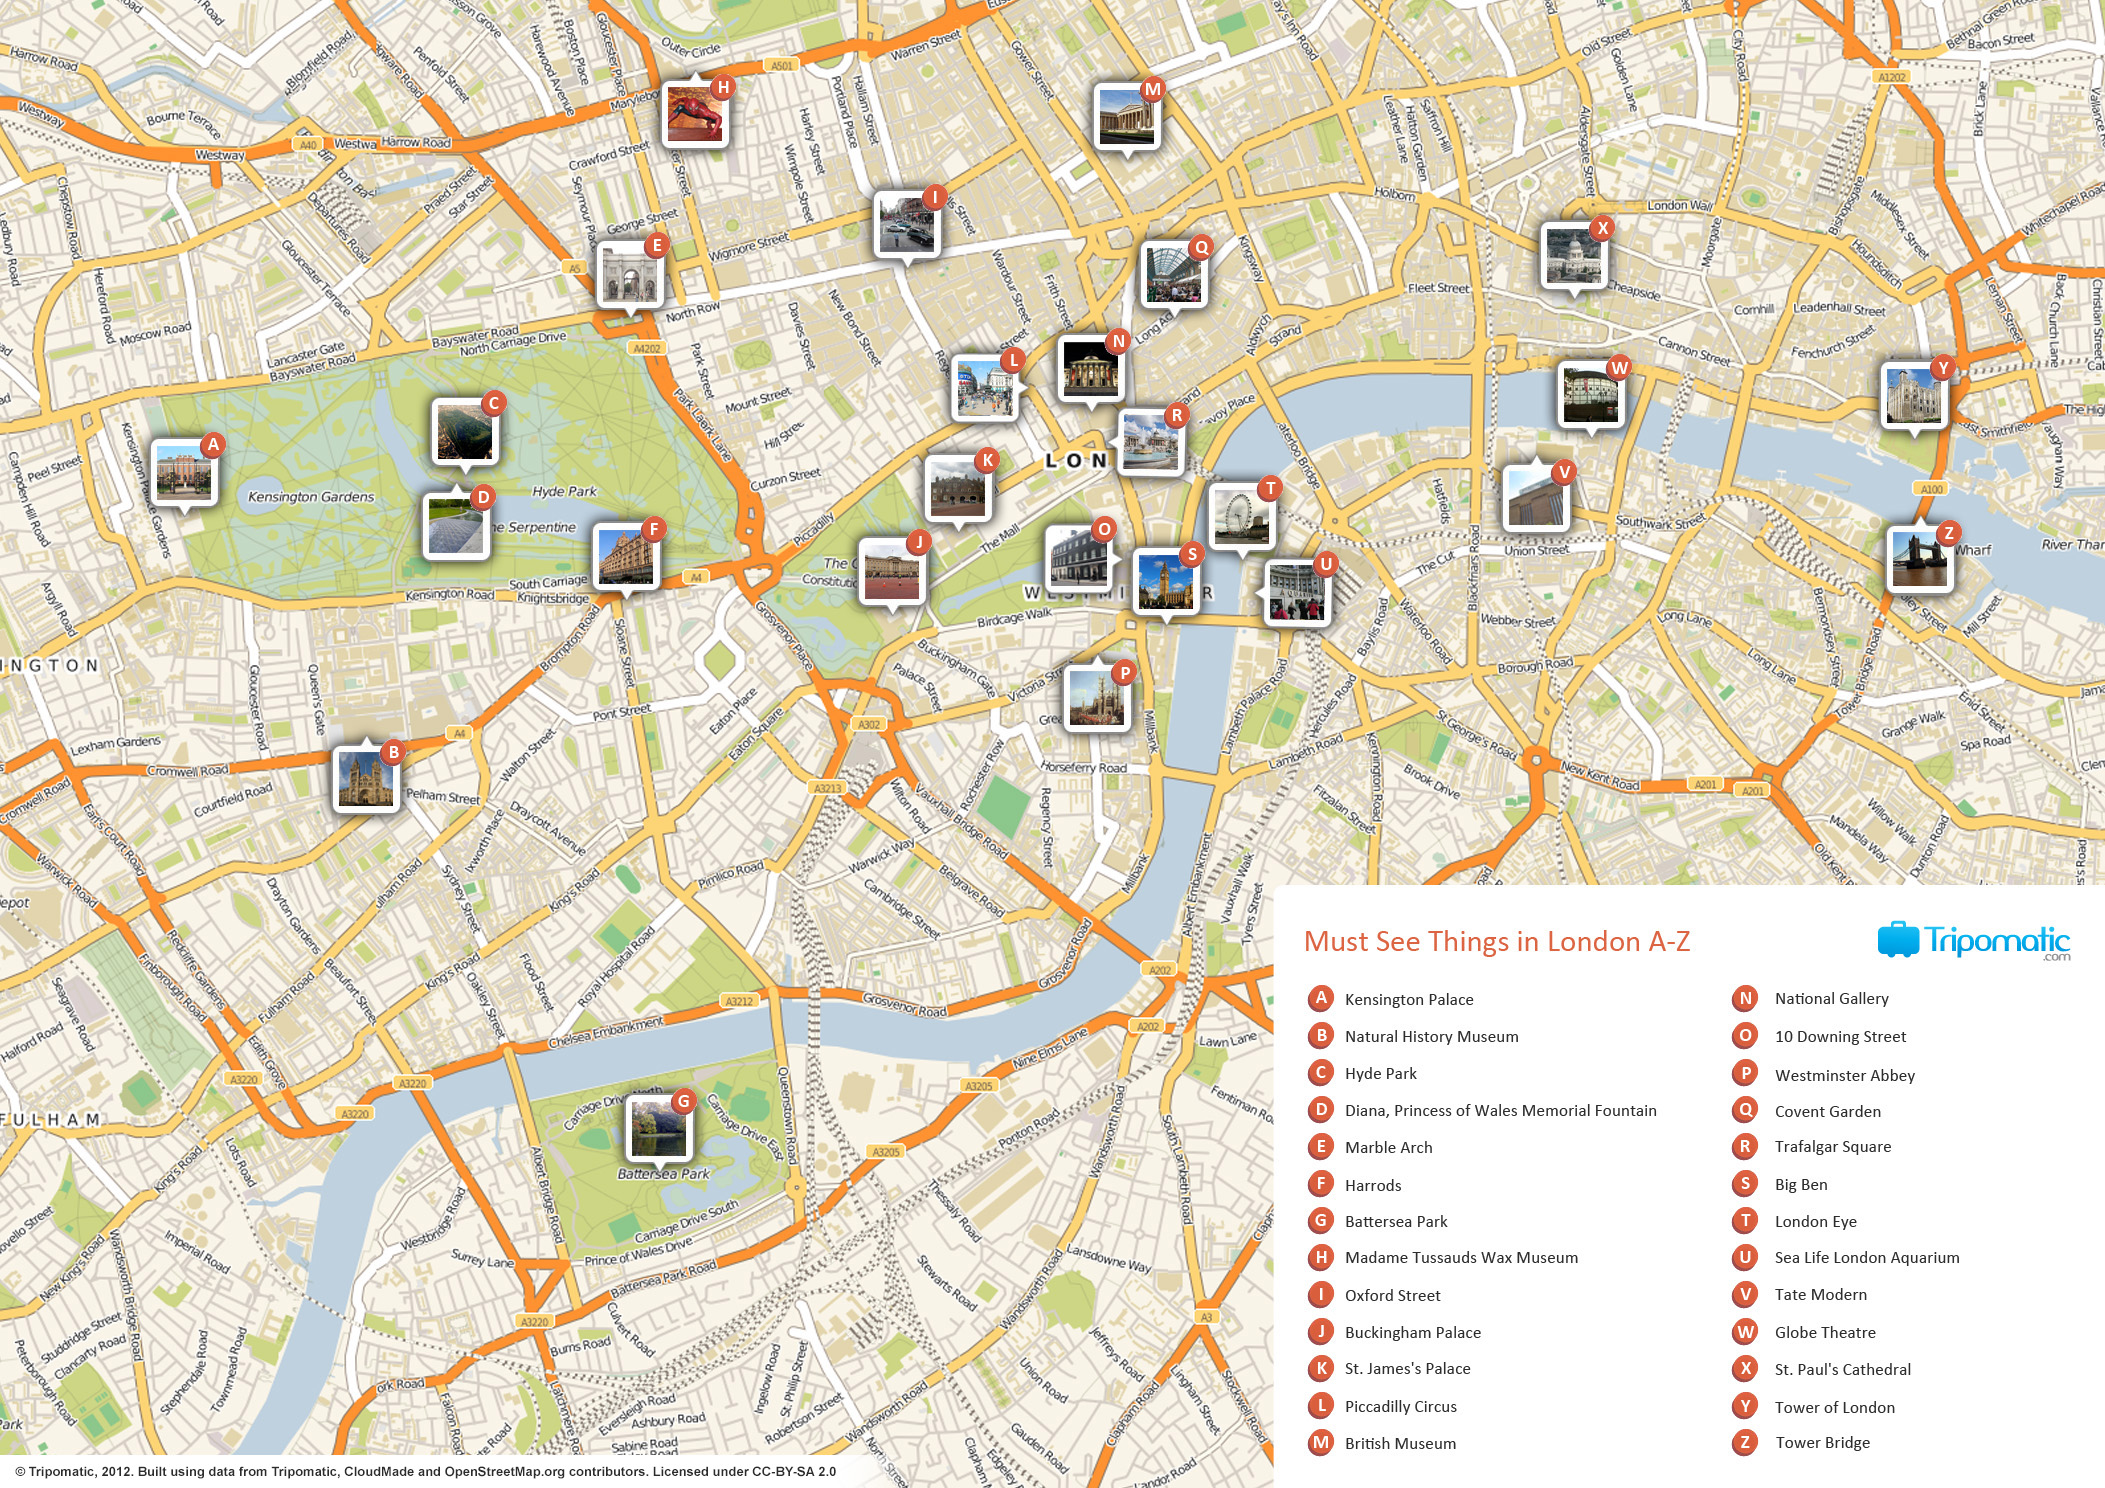 FileLondon printable tourist attractions mapjpg Wikimedia Commons